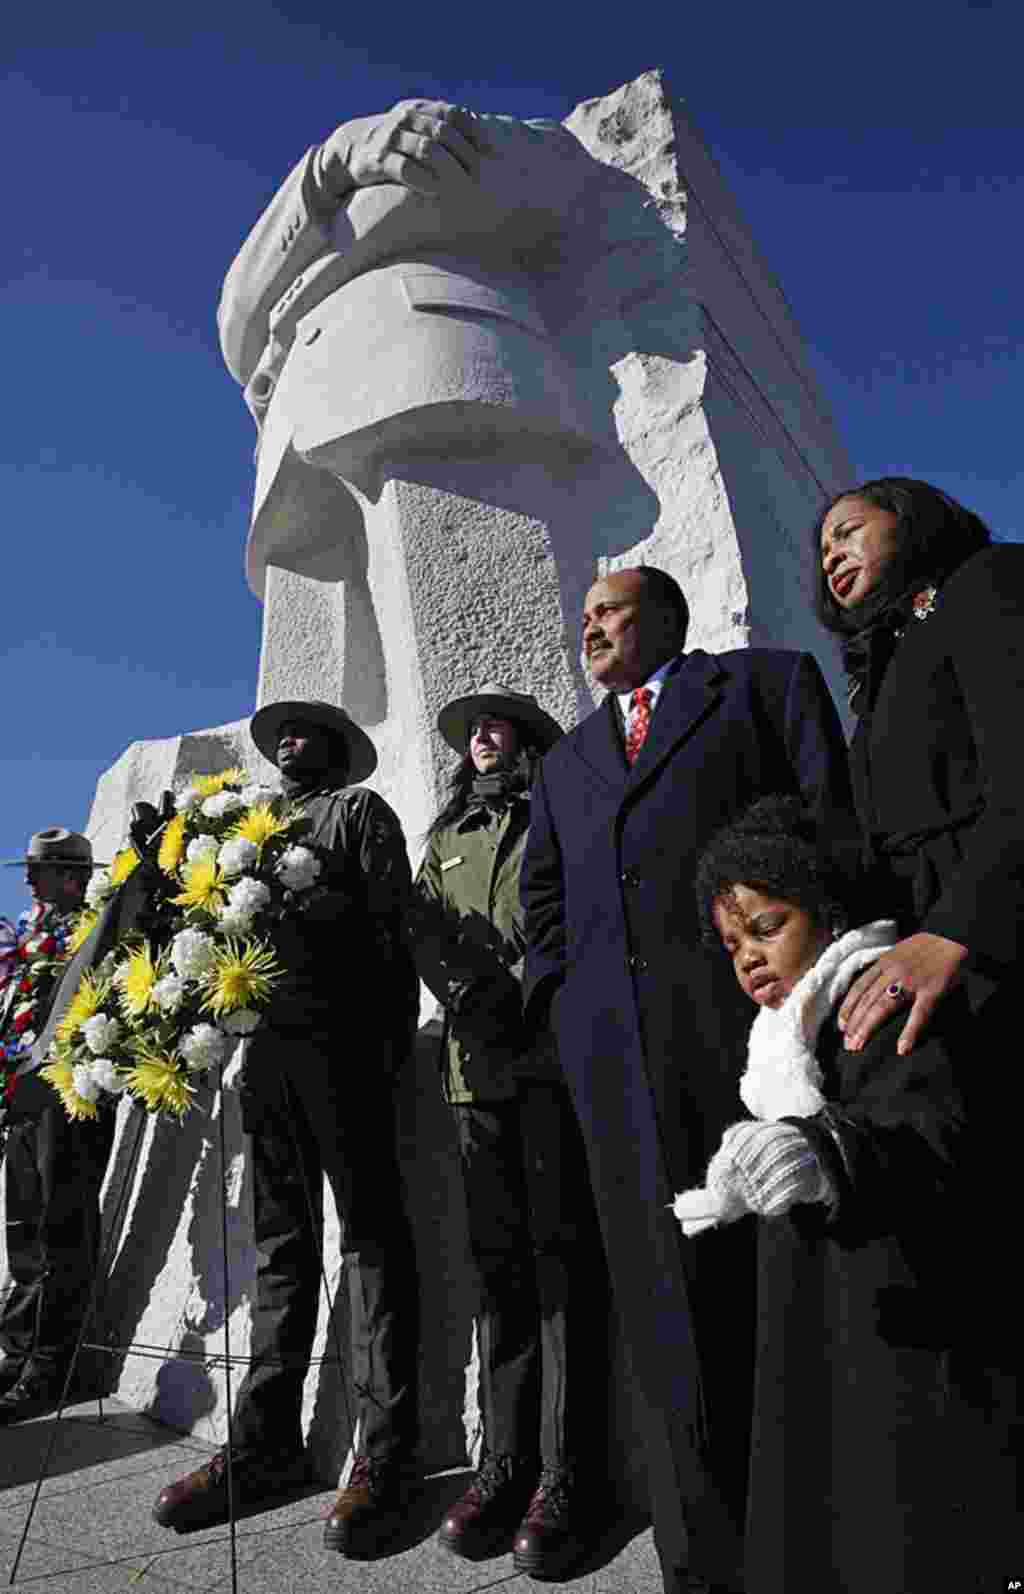 Martin Luther King III, center, the son of civil rights leader Martin Luther King Jr., at a wreath laying ceremony at the Martin Luther King, Jr. Memorial, in Washington, in observance of King's 83rd birthday anniversary, January 15, 2012. (AP)